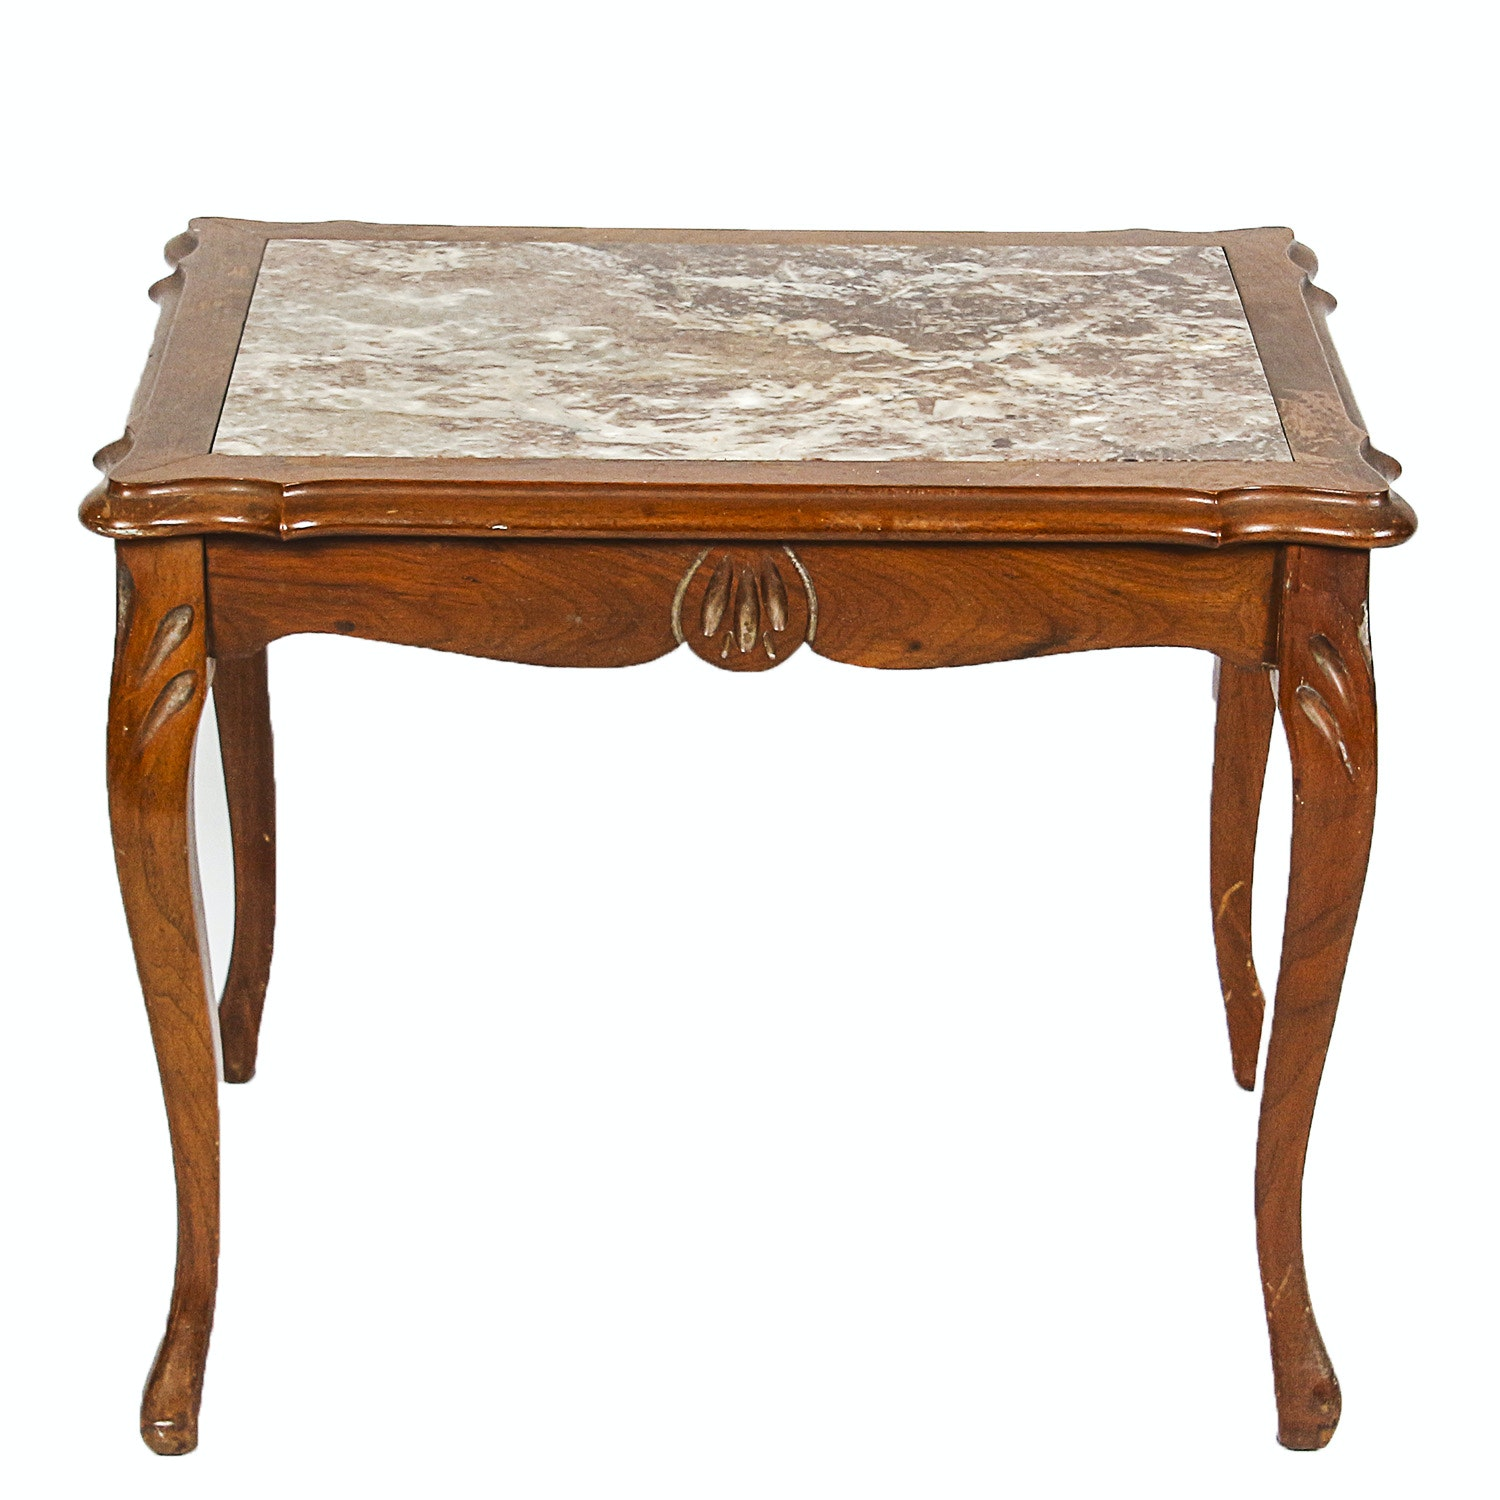 Stone Top Wooden Side Table